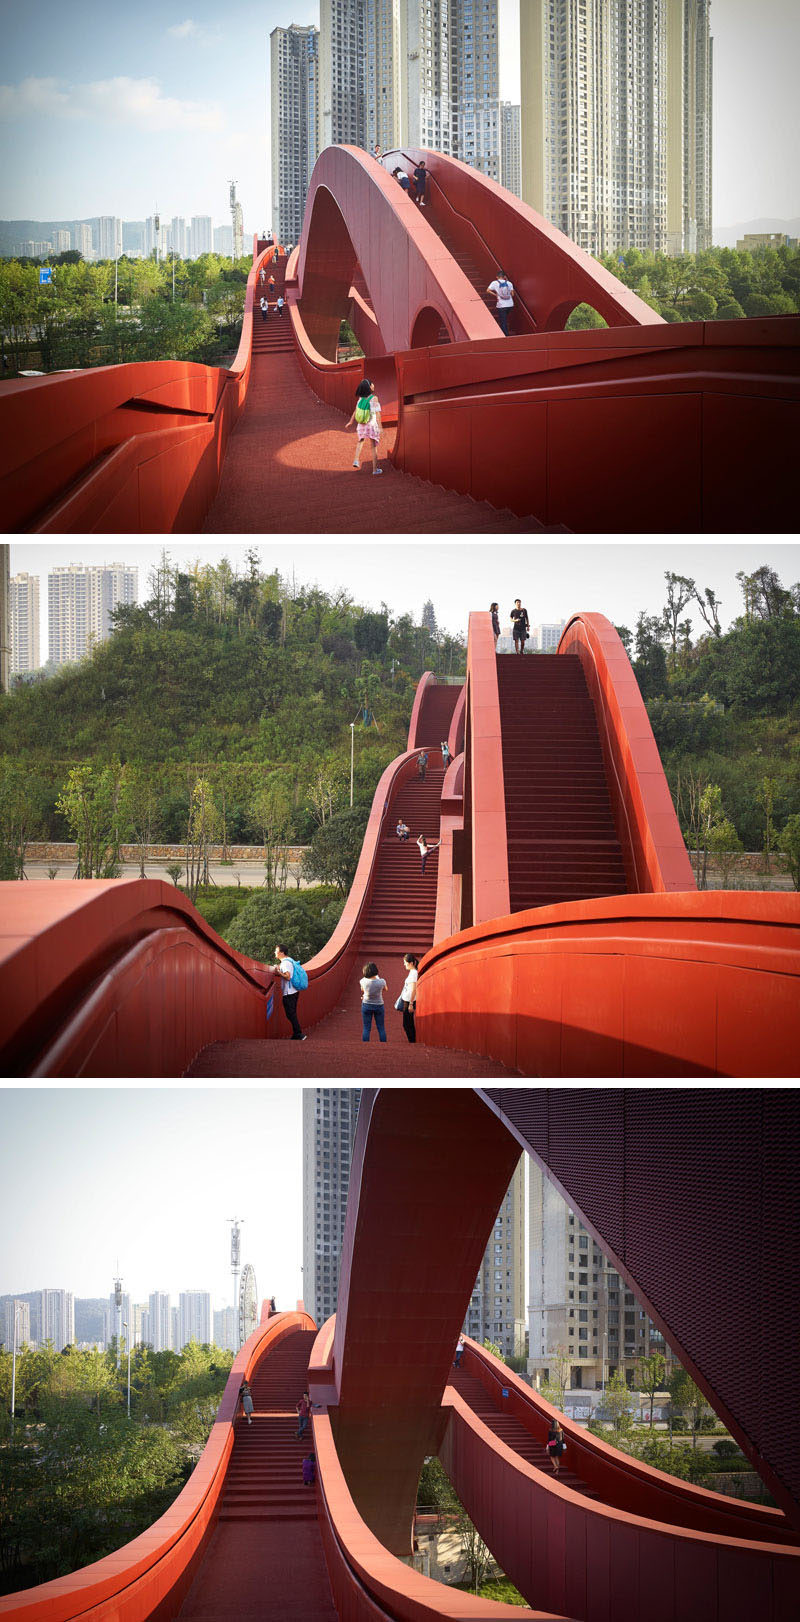 The Lucky Knot Bridge Opens In Changsha, China